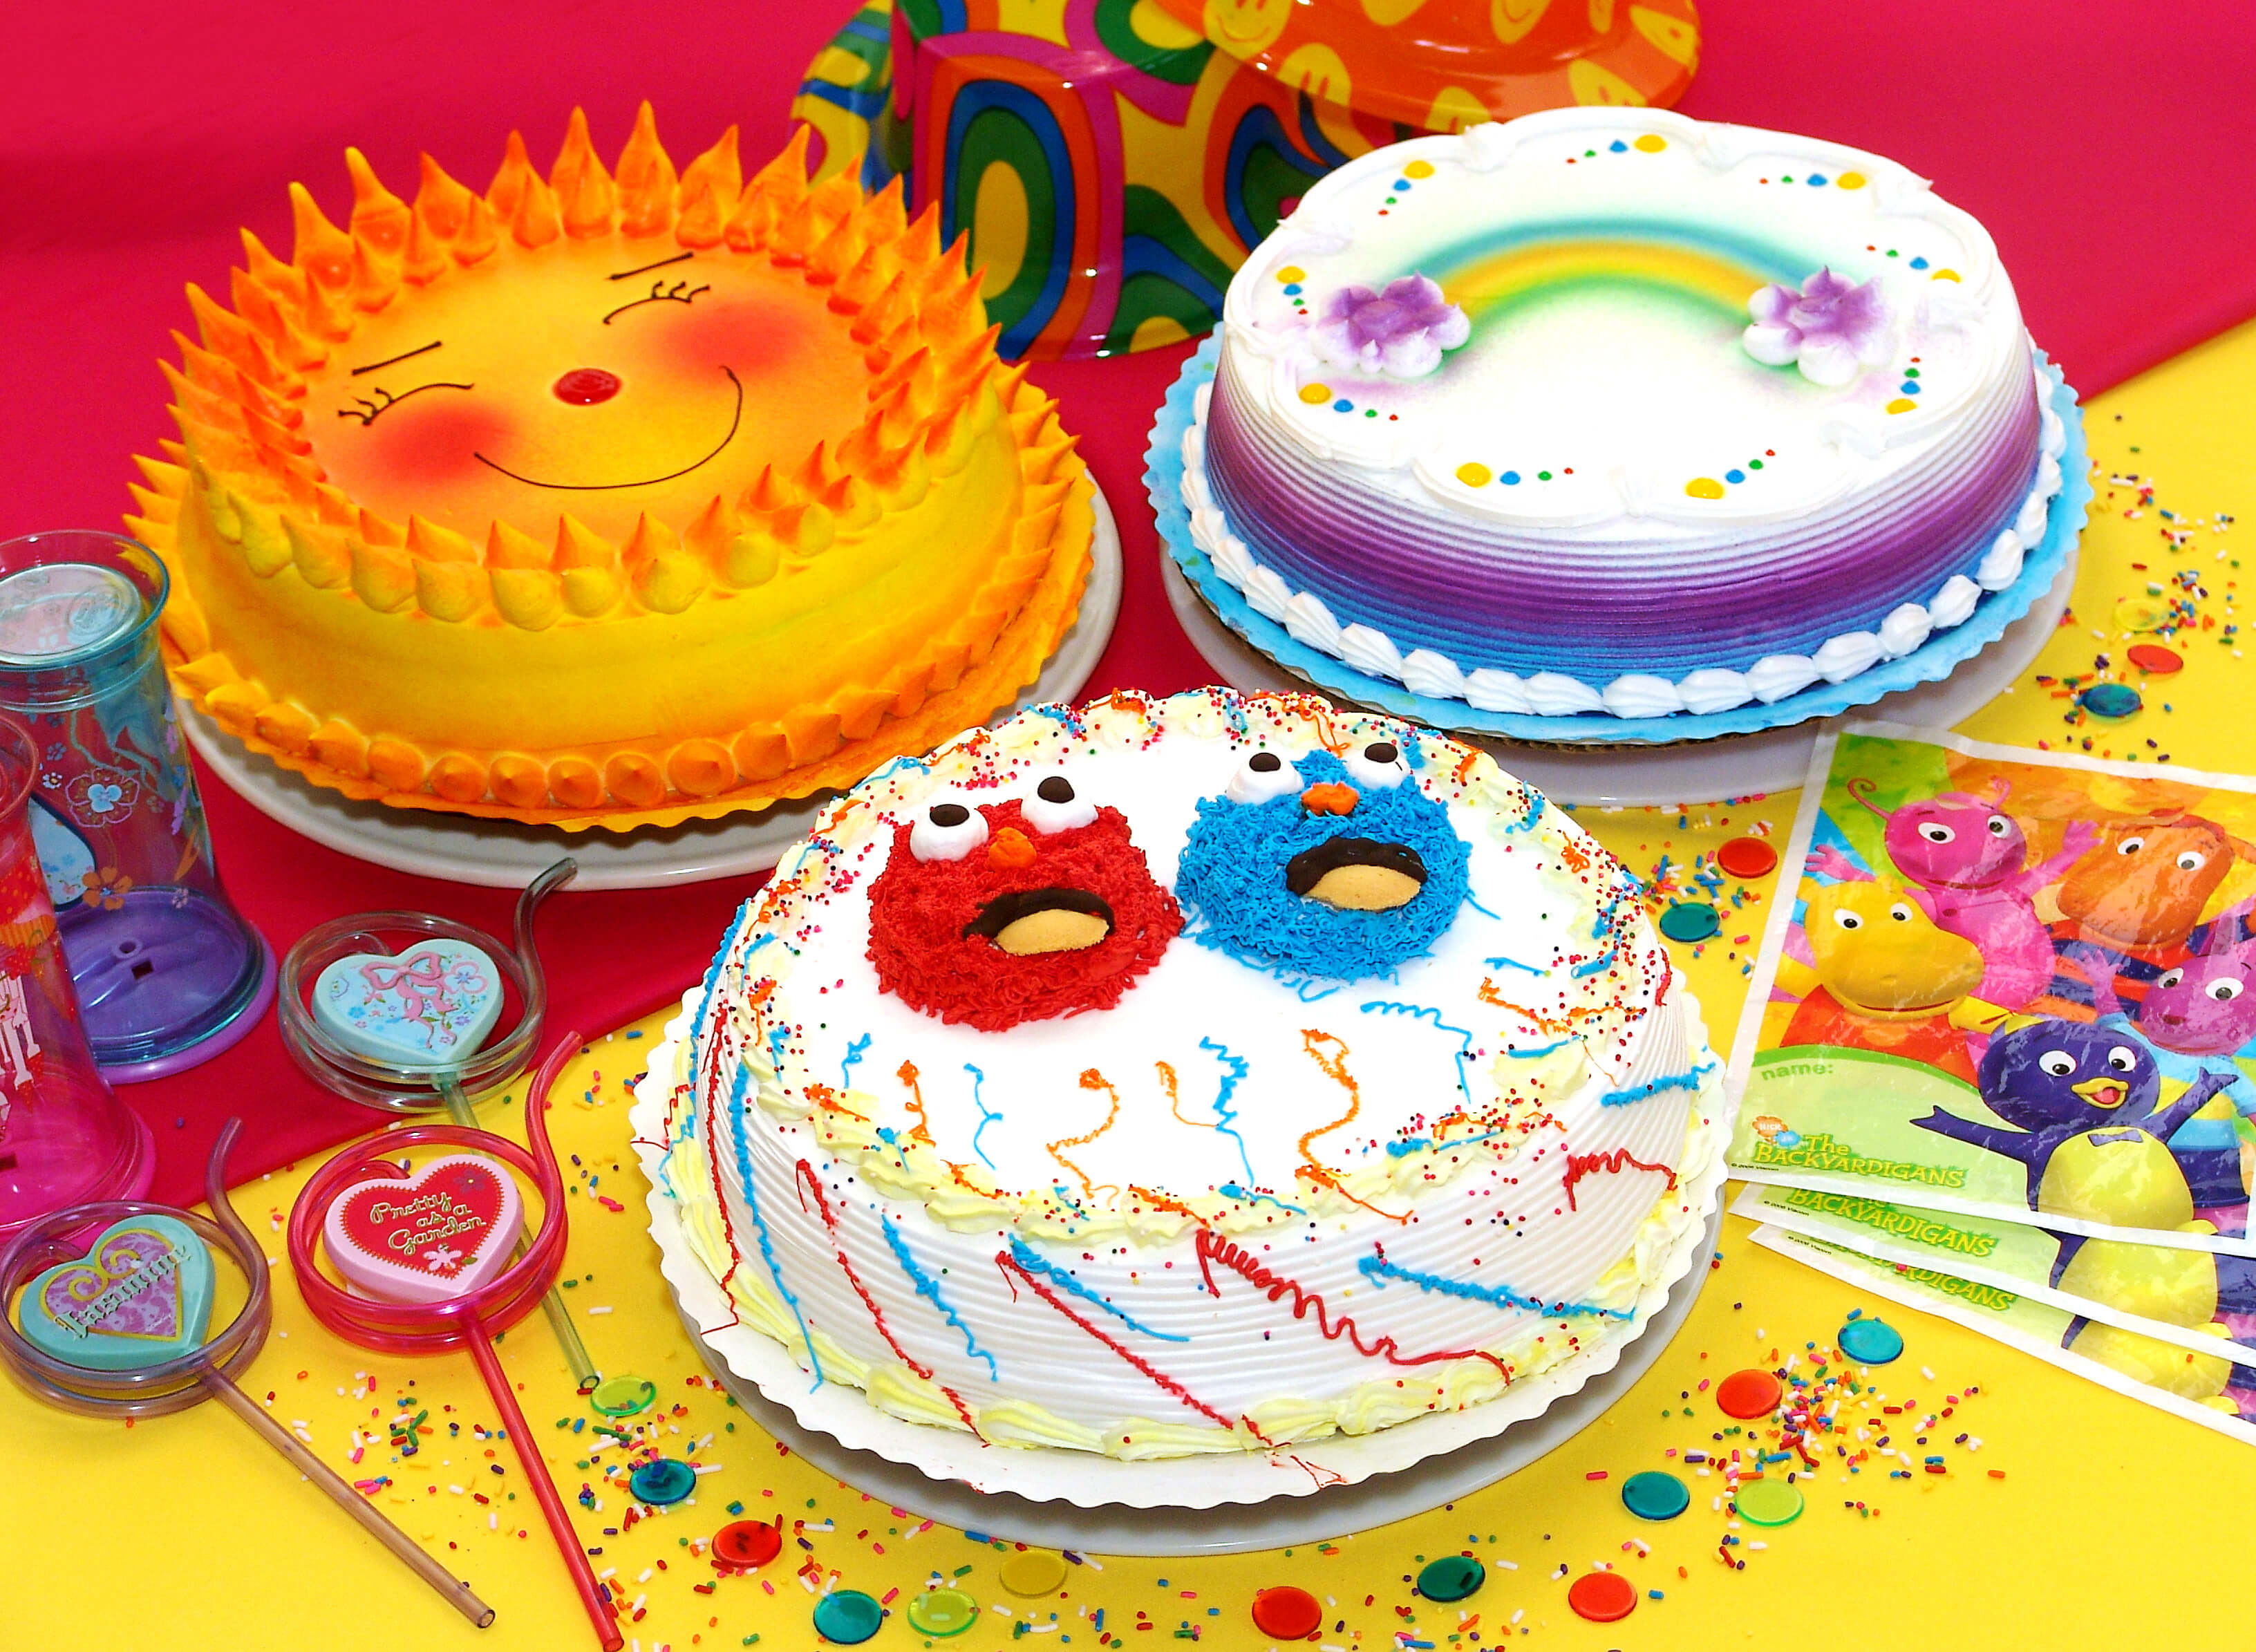 Ideas para la decoracion de pasteles infantiles - Decoraciones de fotos ...